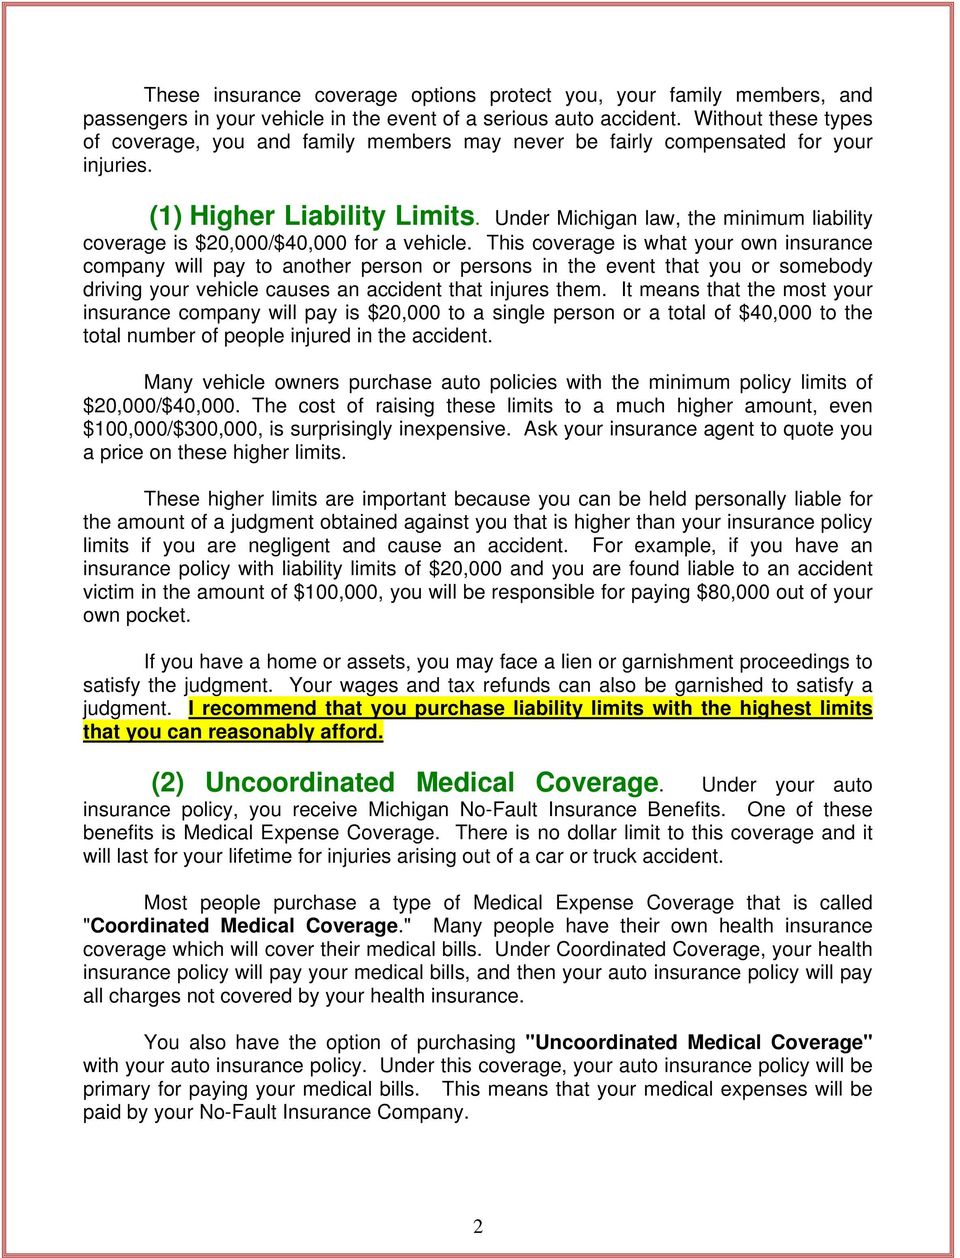 Under Michigan law, the minimum liability coverage is $20,000/$40,000 for a vehicle.